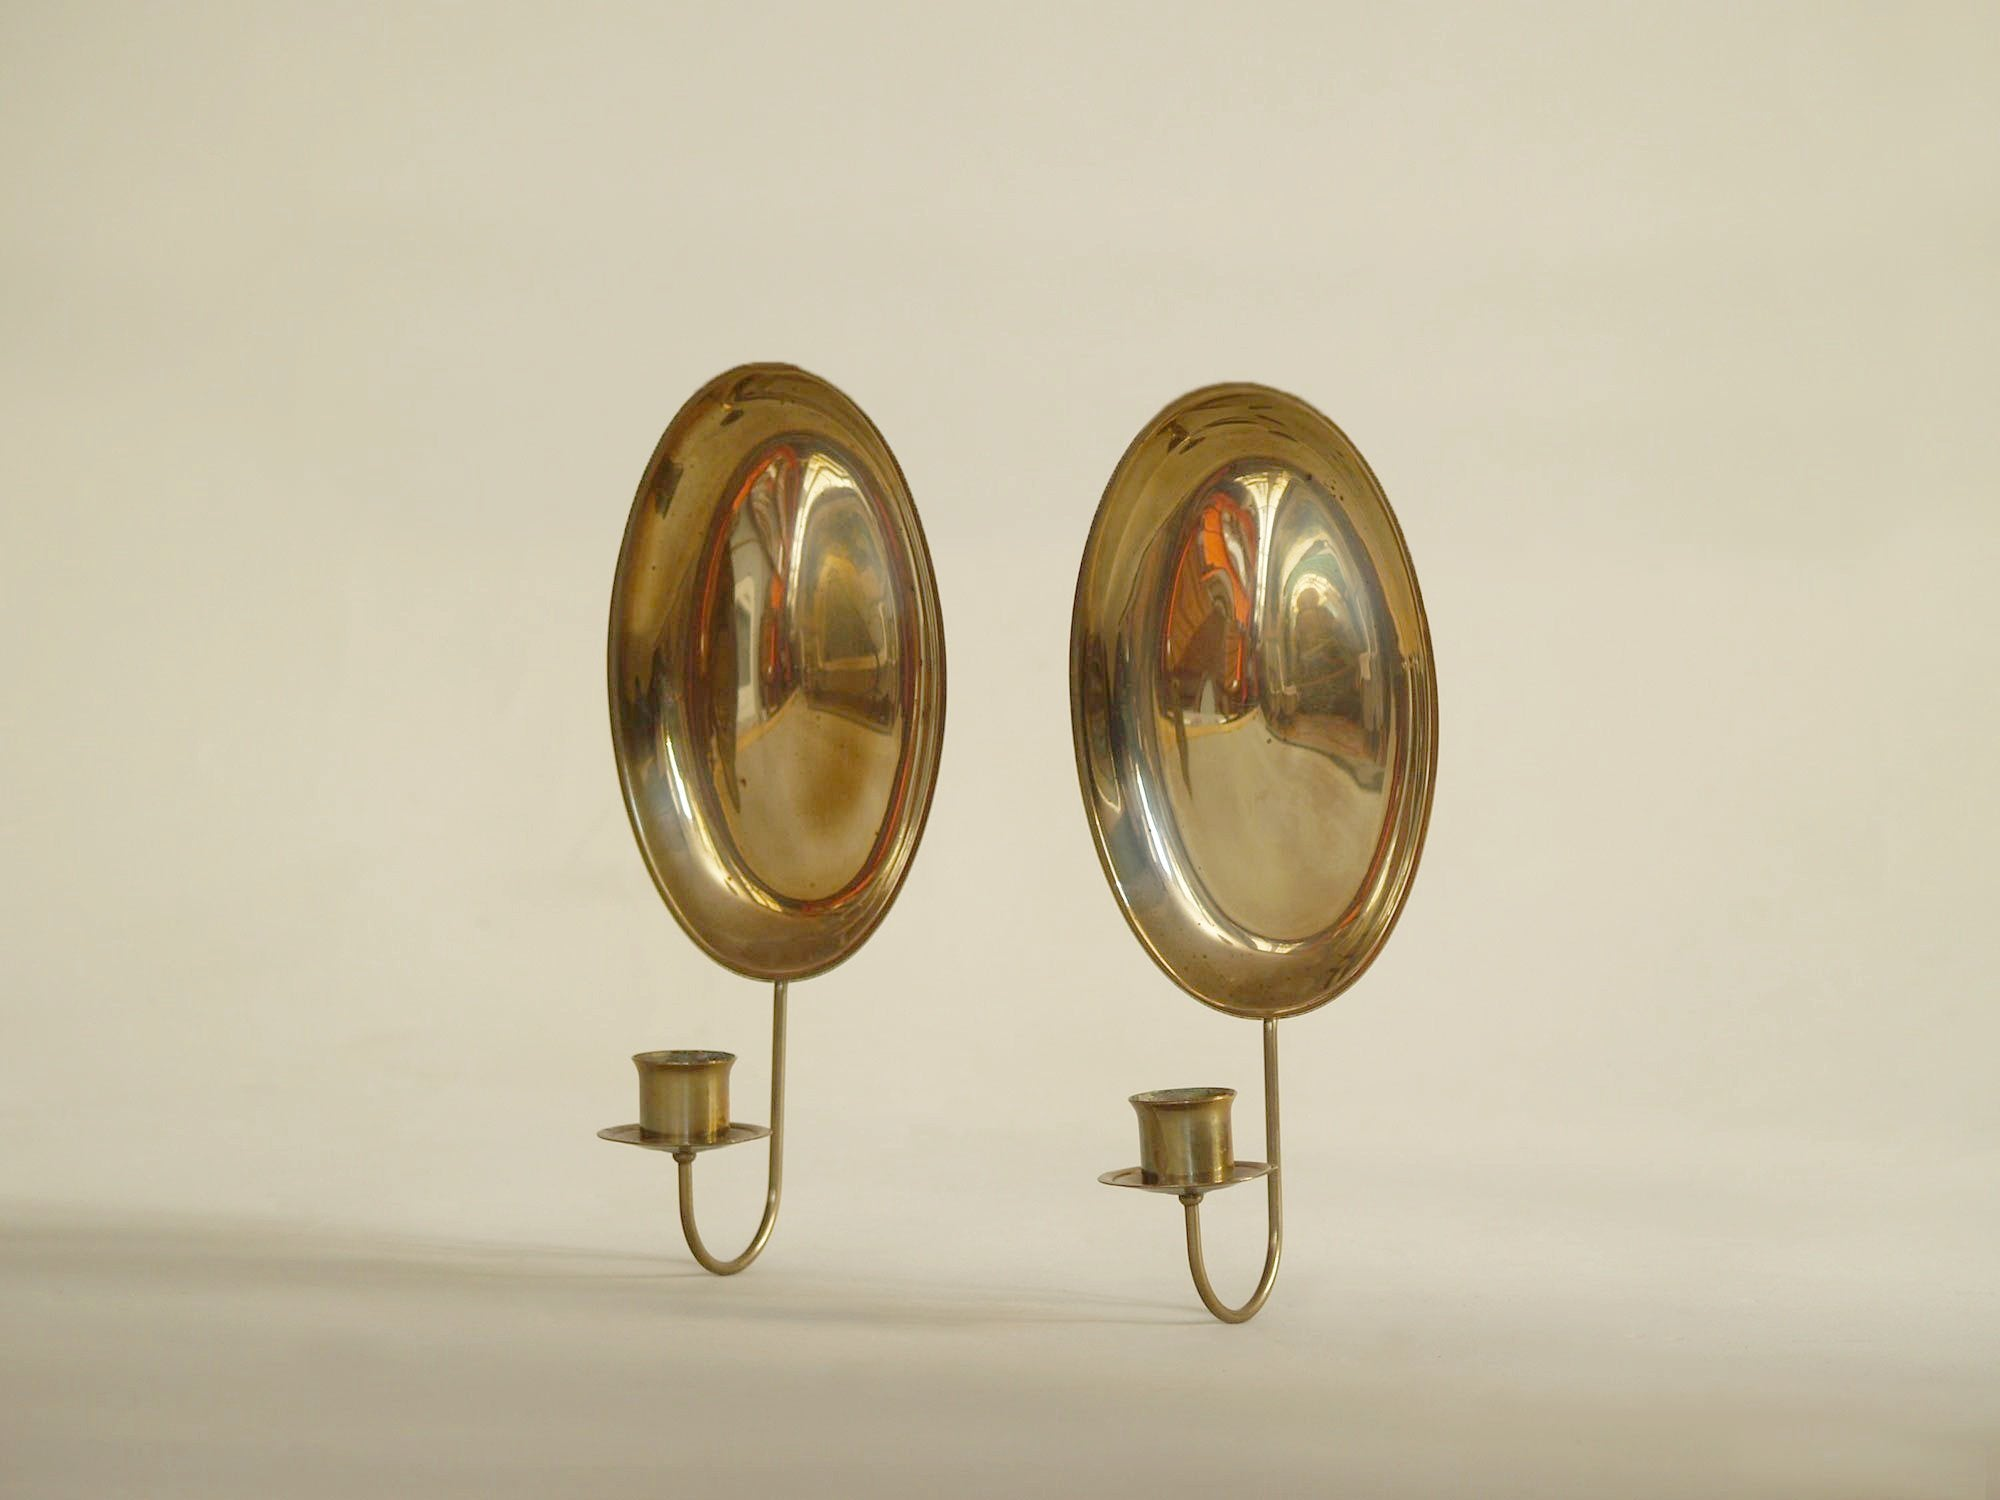 Paire de miroirs d'applique gustavien en laiton, Suède (vers 1900)..Pair of gustavian folk brass wall hanging candle holders, Sweden (circa 1900)